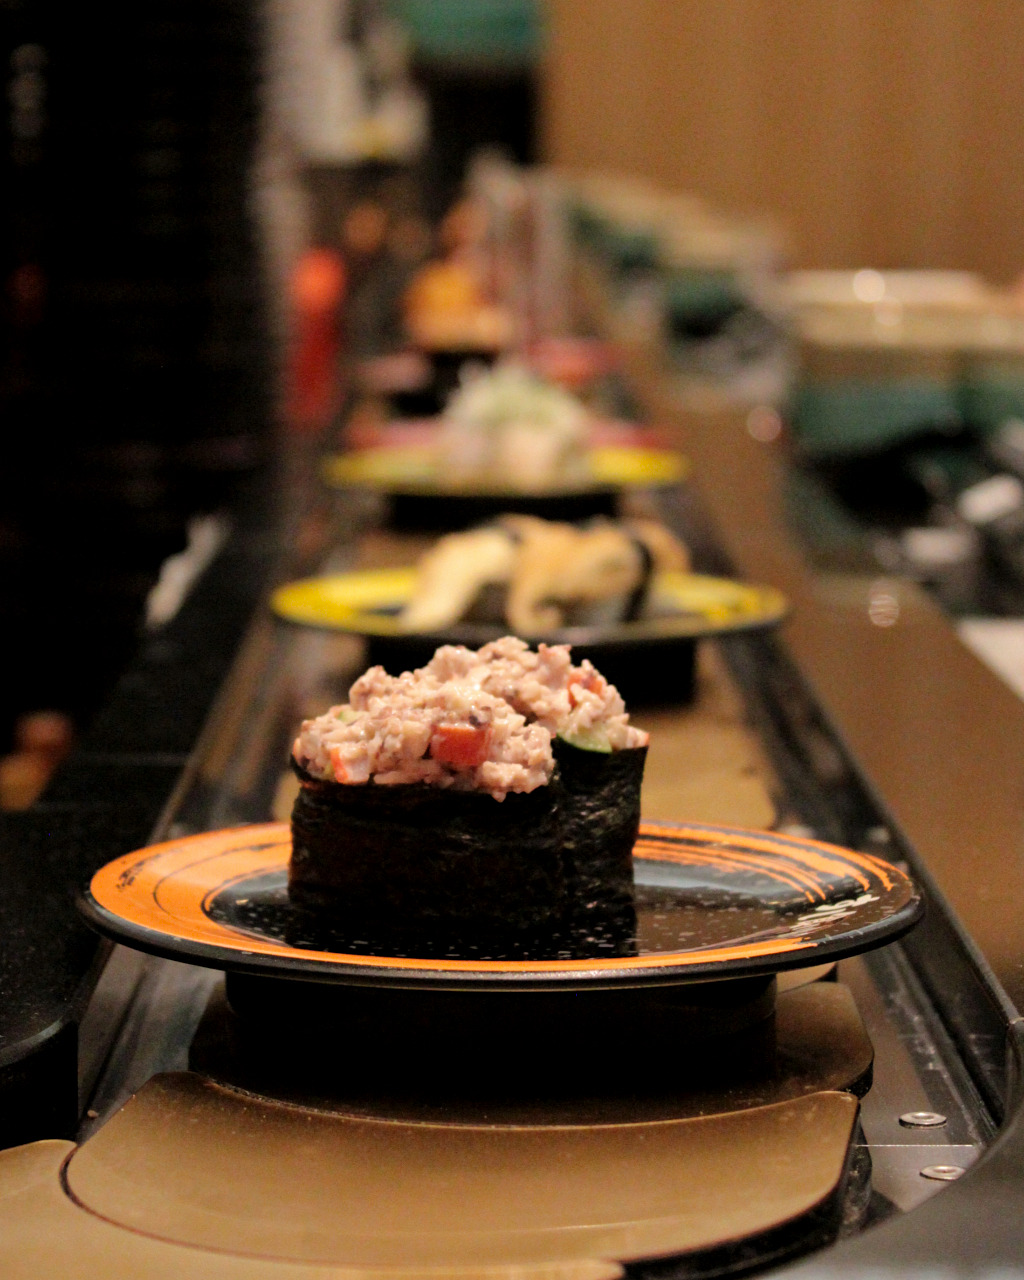 Sushi along the conveyor belt at Suishi Kuine in Kanazawa, Japan